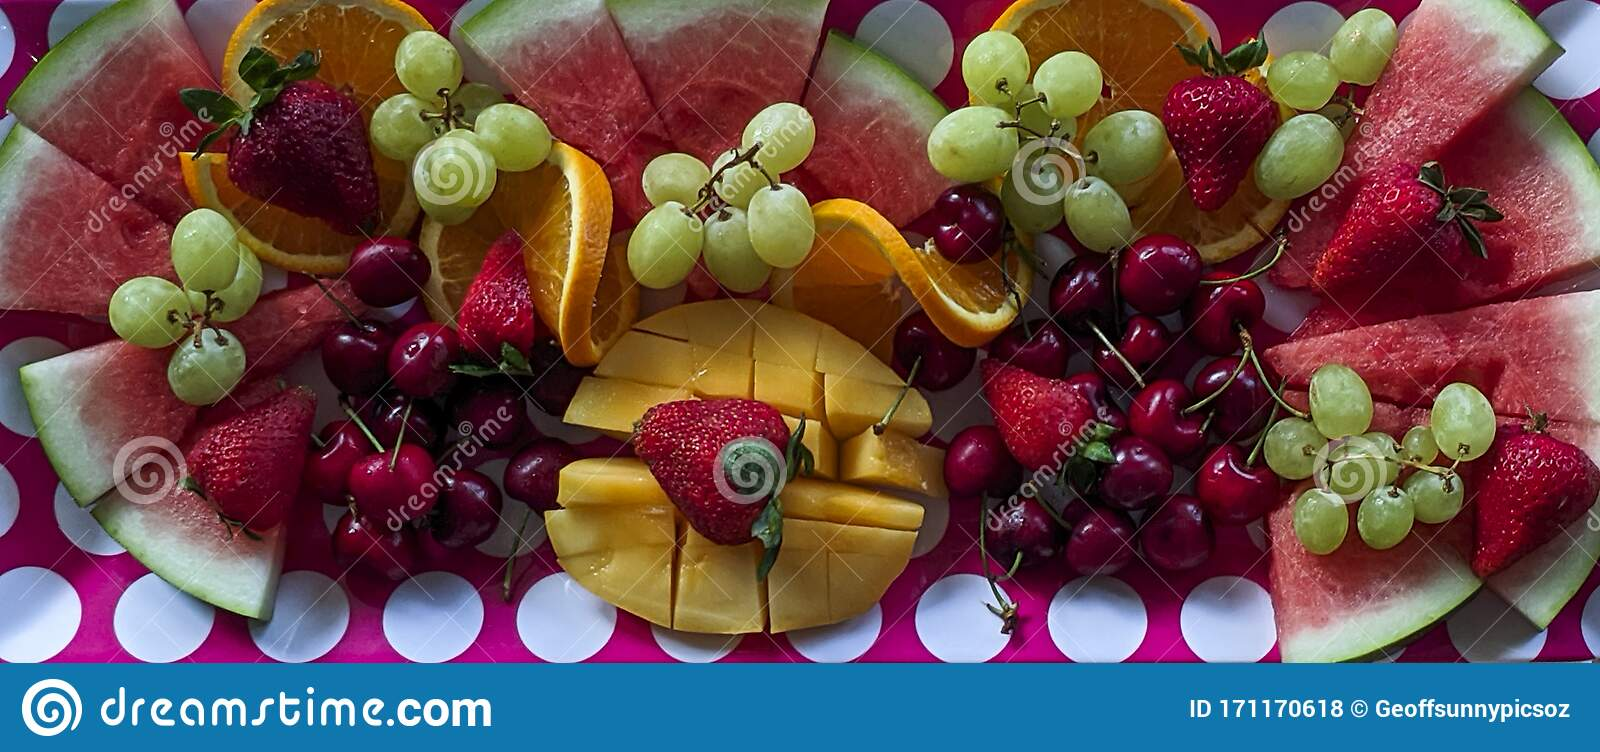 A Colourful Christmas Breakfast Fruit Platter On A Dining Table Closeup Stock Photo Image Of Melon Grapes 171170618